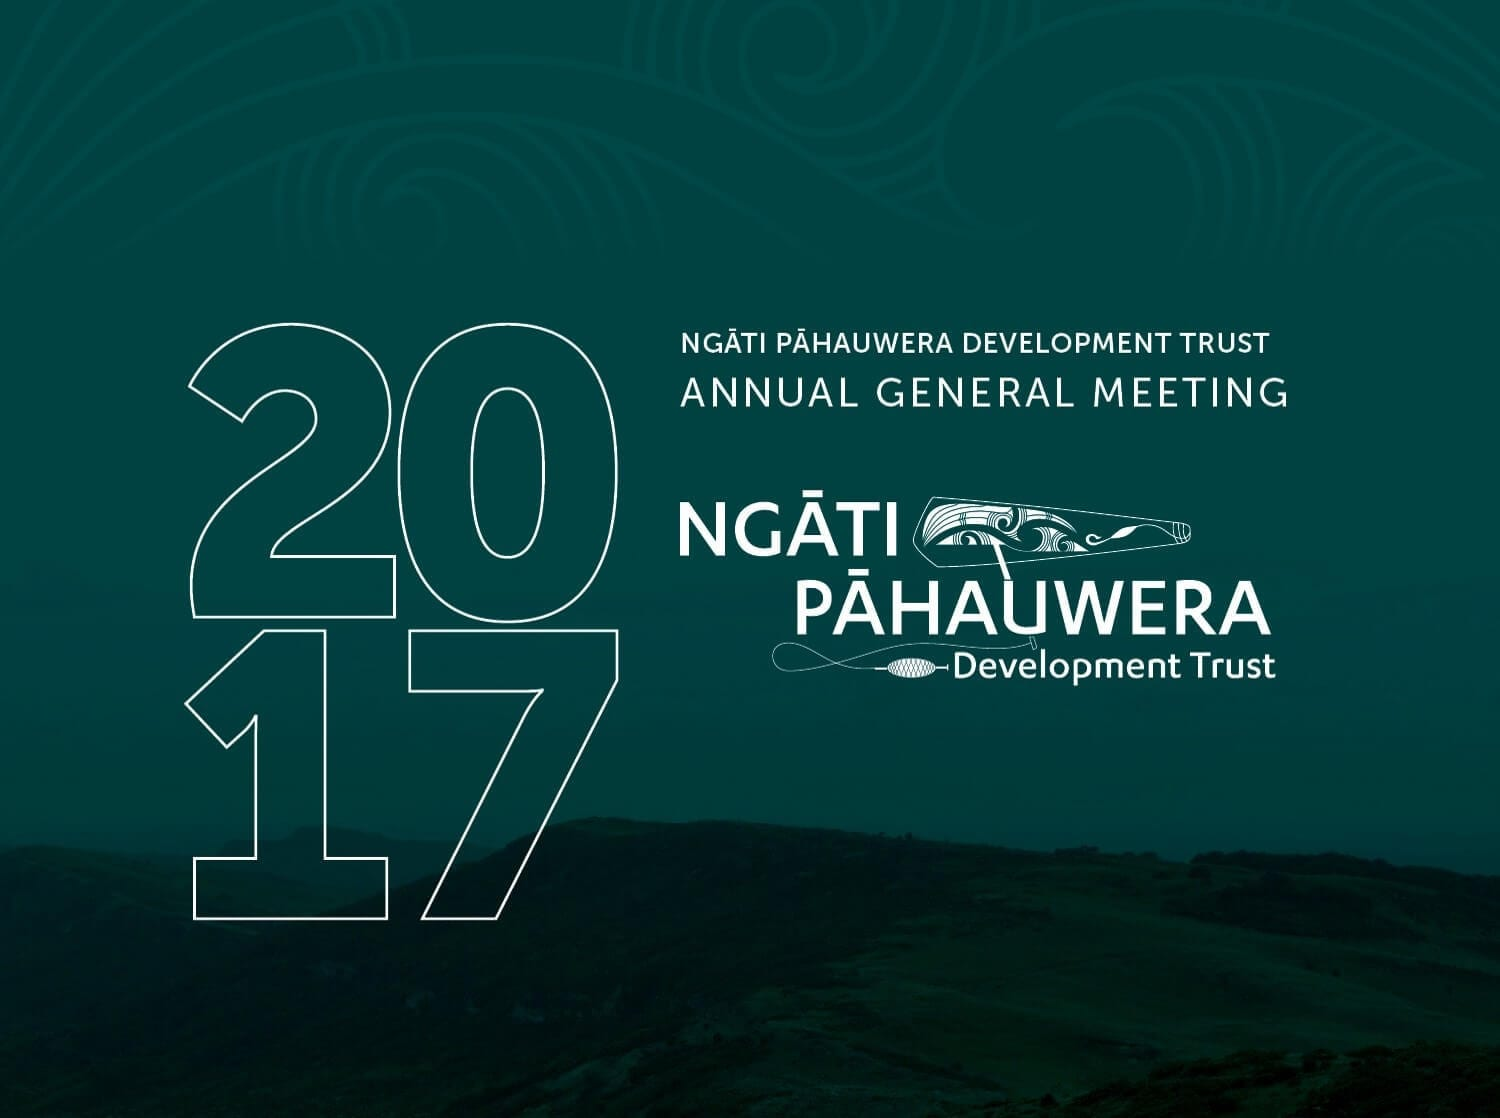 Power Point Presentation – Annual General Meeting 2017